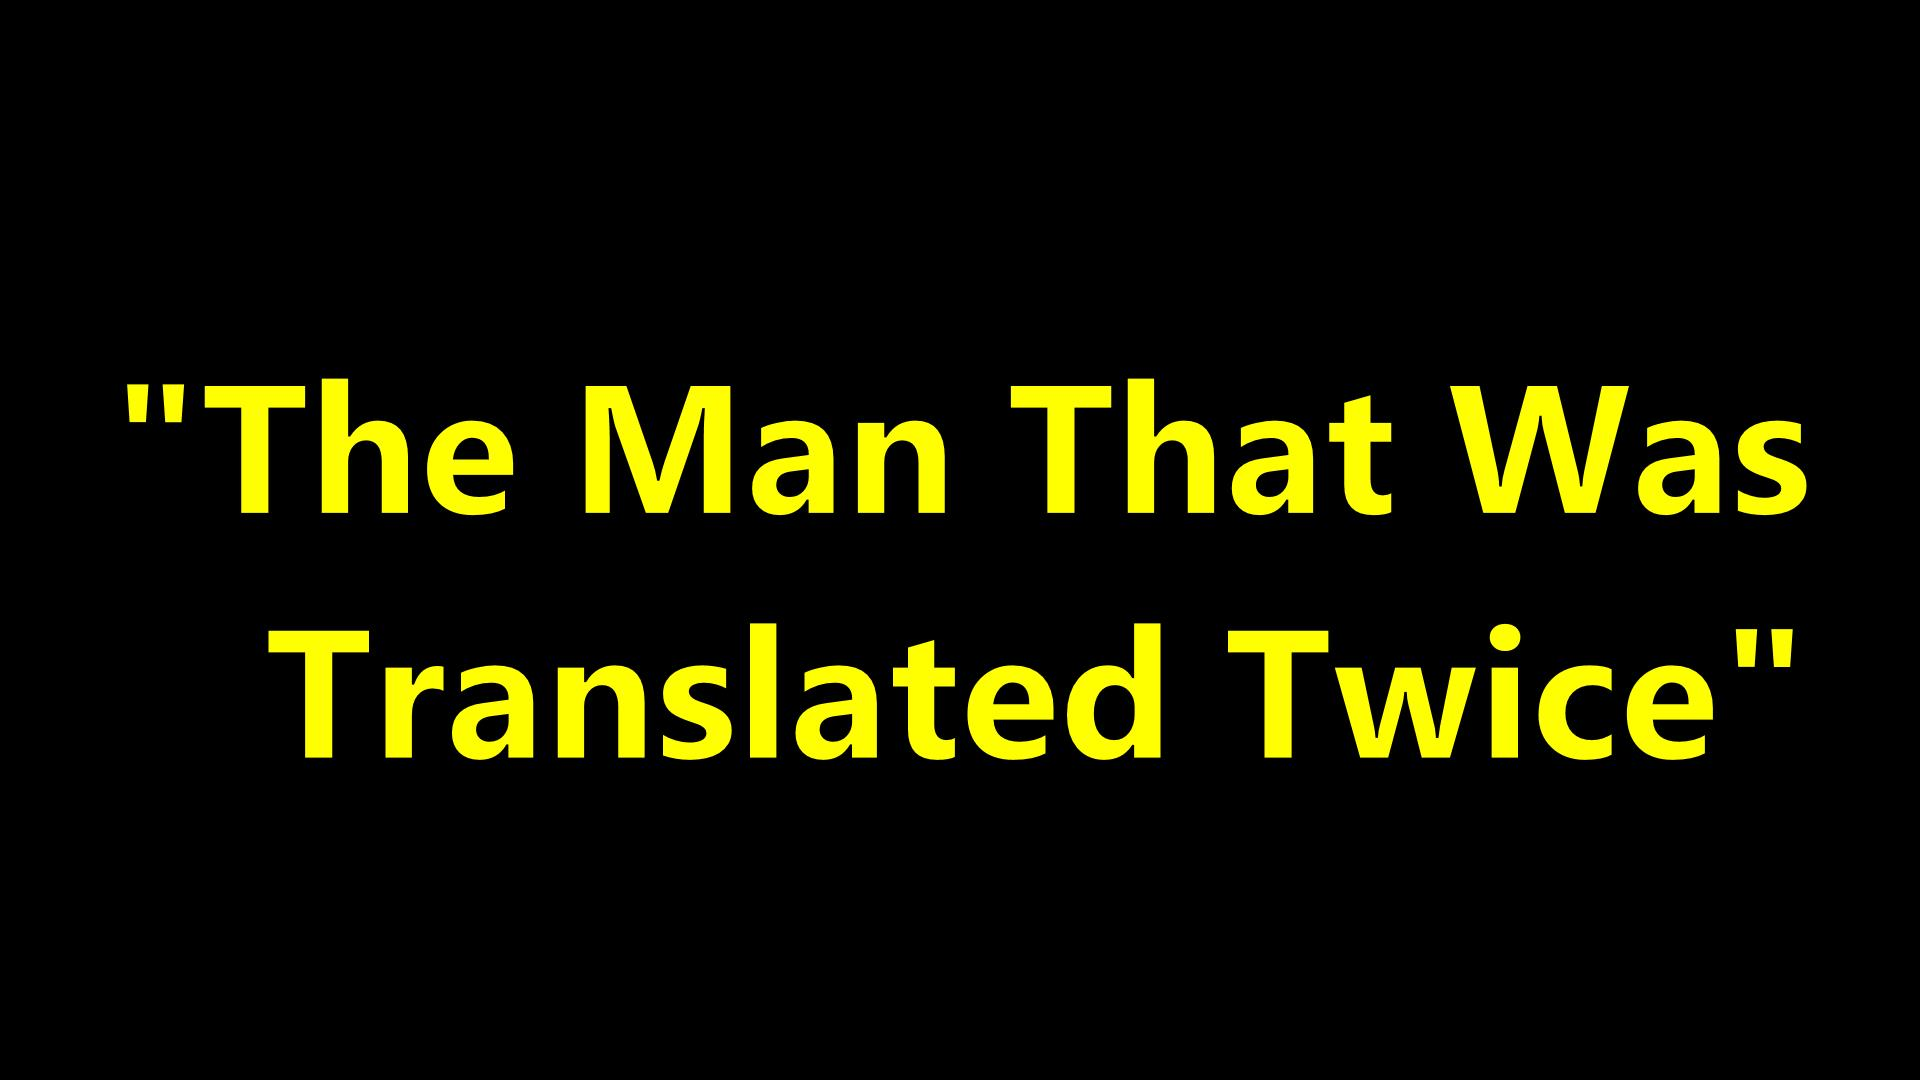 The Man That Was Translated Twice